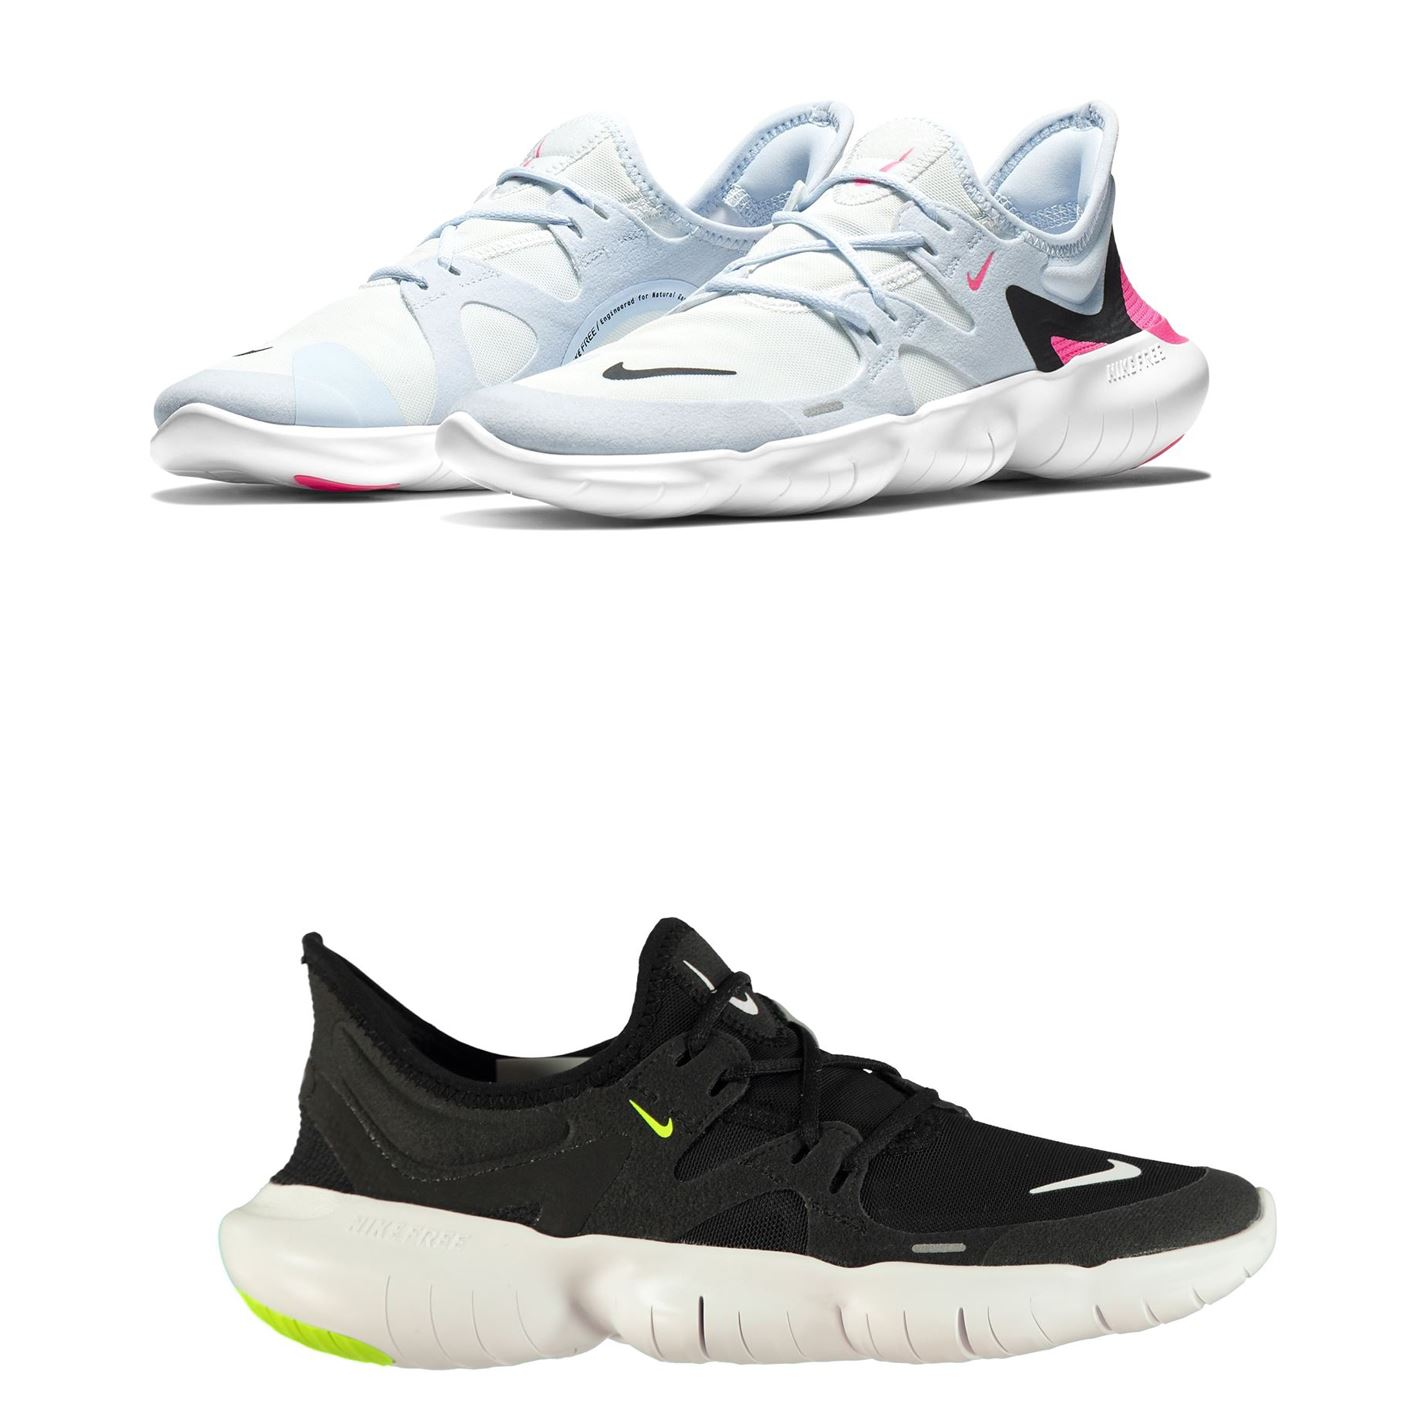 online store 19fa0 738cc Details about Nike Free Run 5.0 Womens Running Shoes Trainers Ladies  Athleisure Sneakers